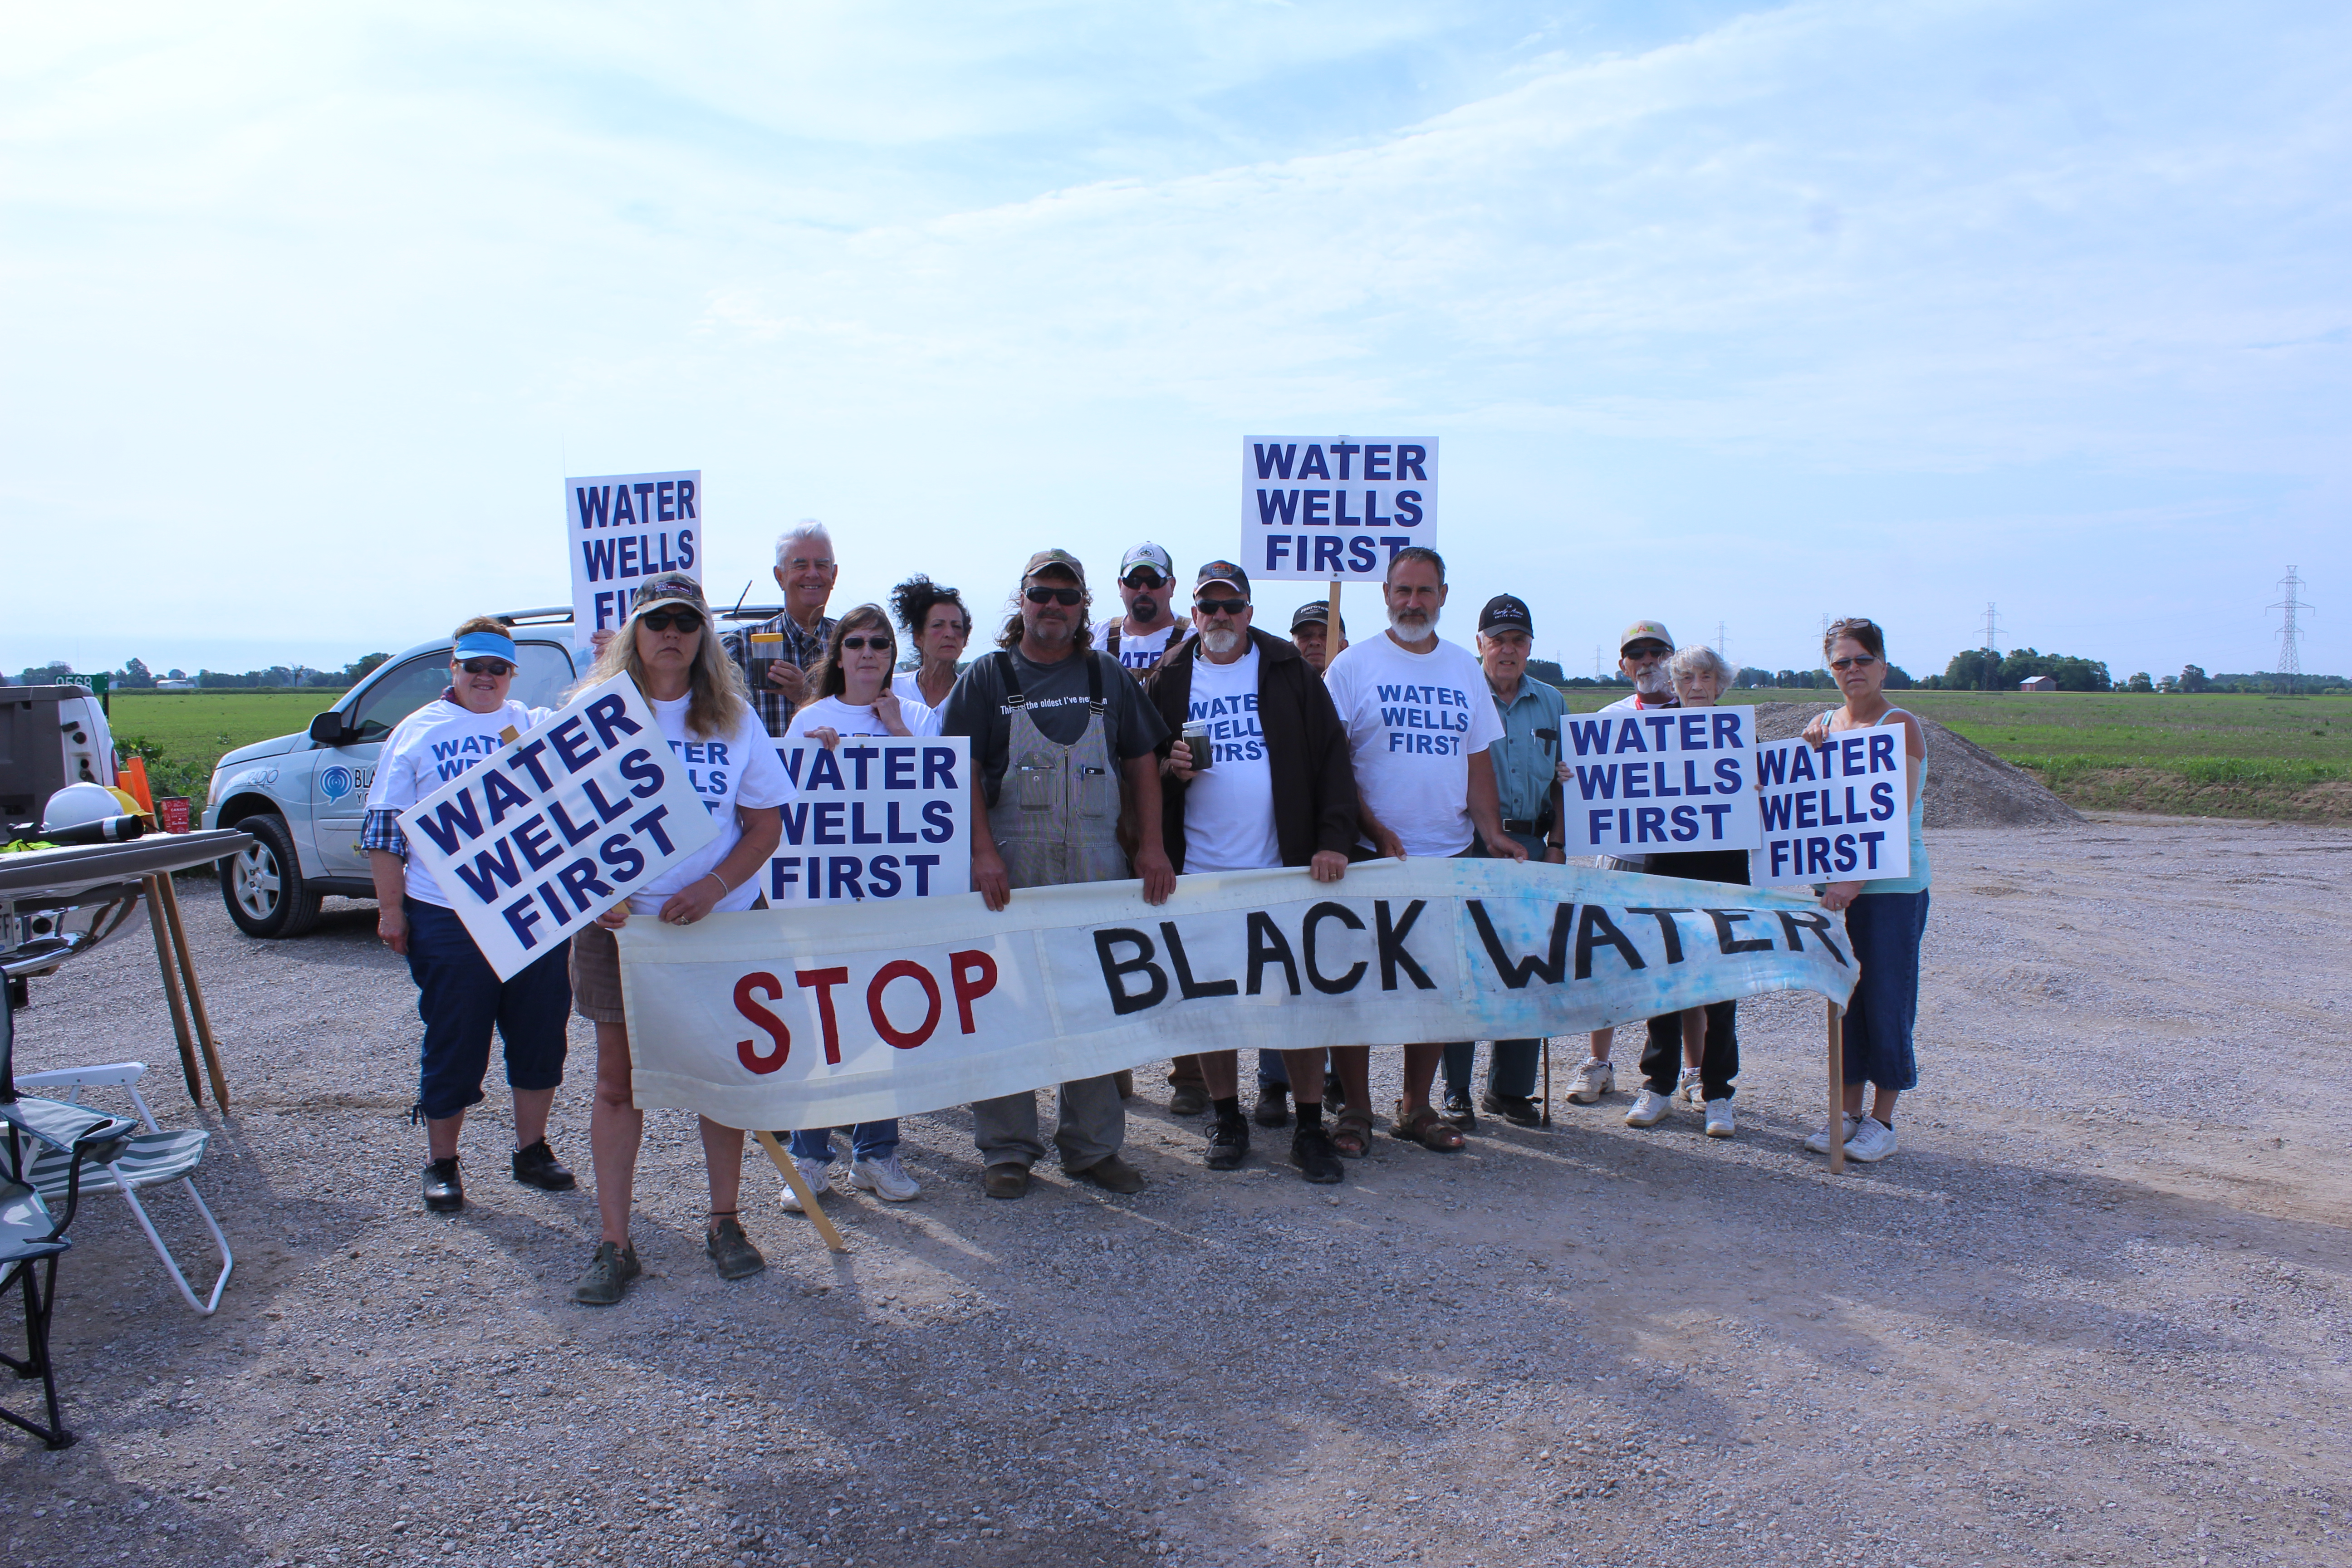 CK Mayor Calls On Environment Ministry To Address Well Water Concerns